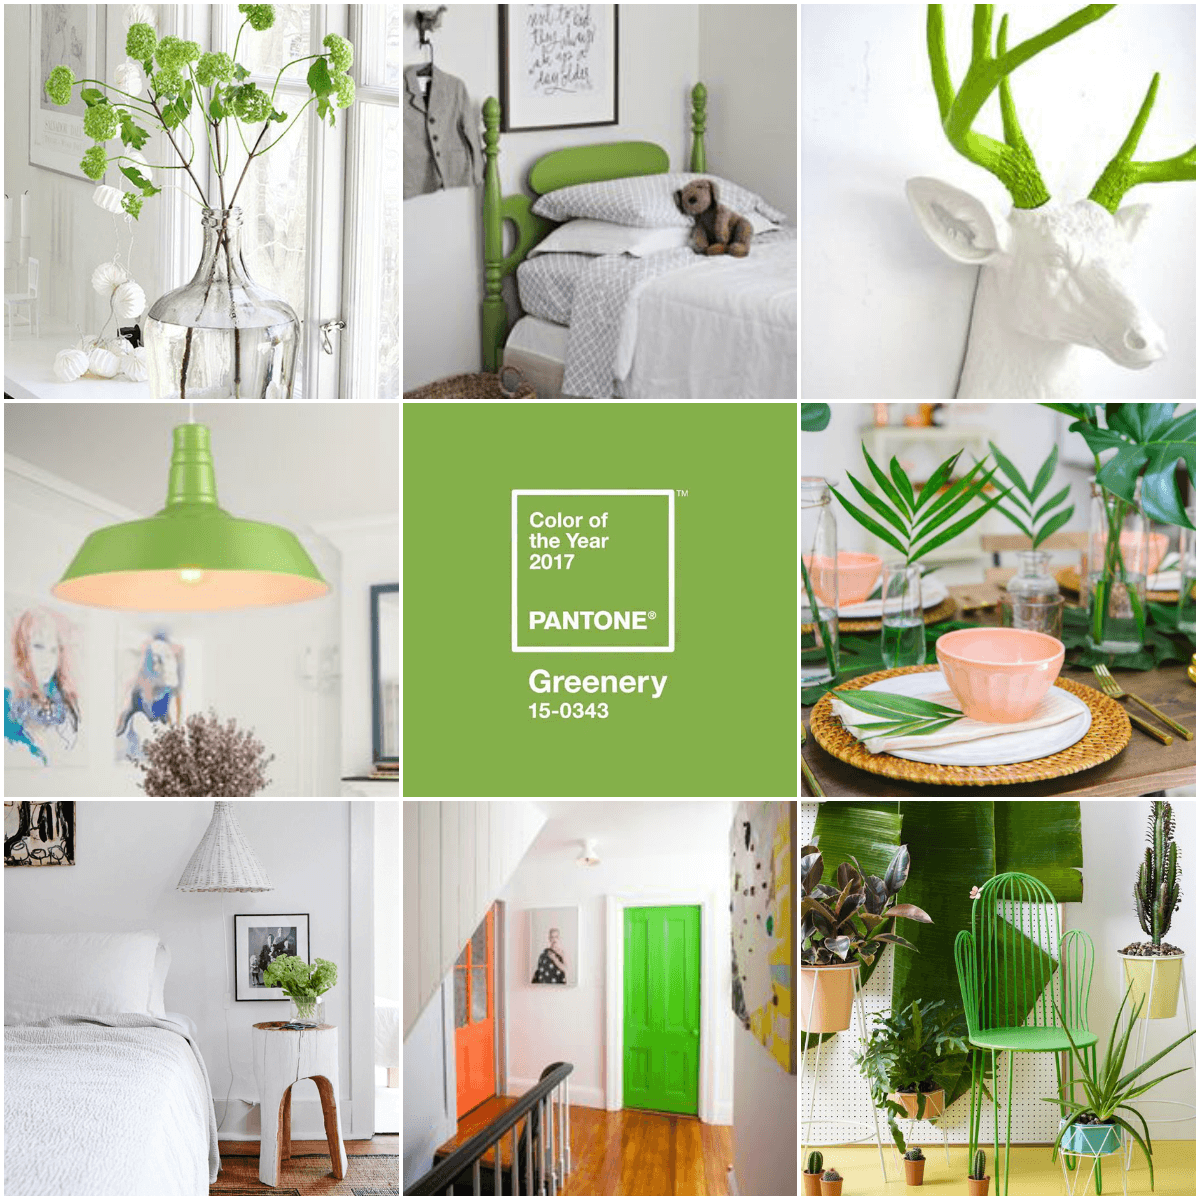 Pantone reveals the colour of the year for 2017 greenery for Pantone 2017 greenery